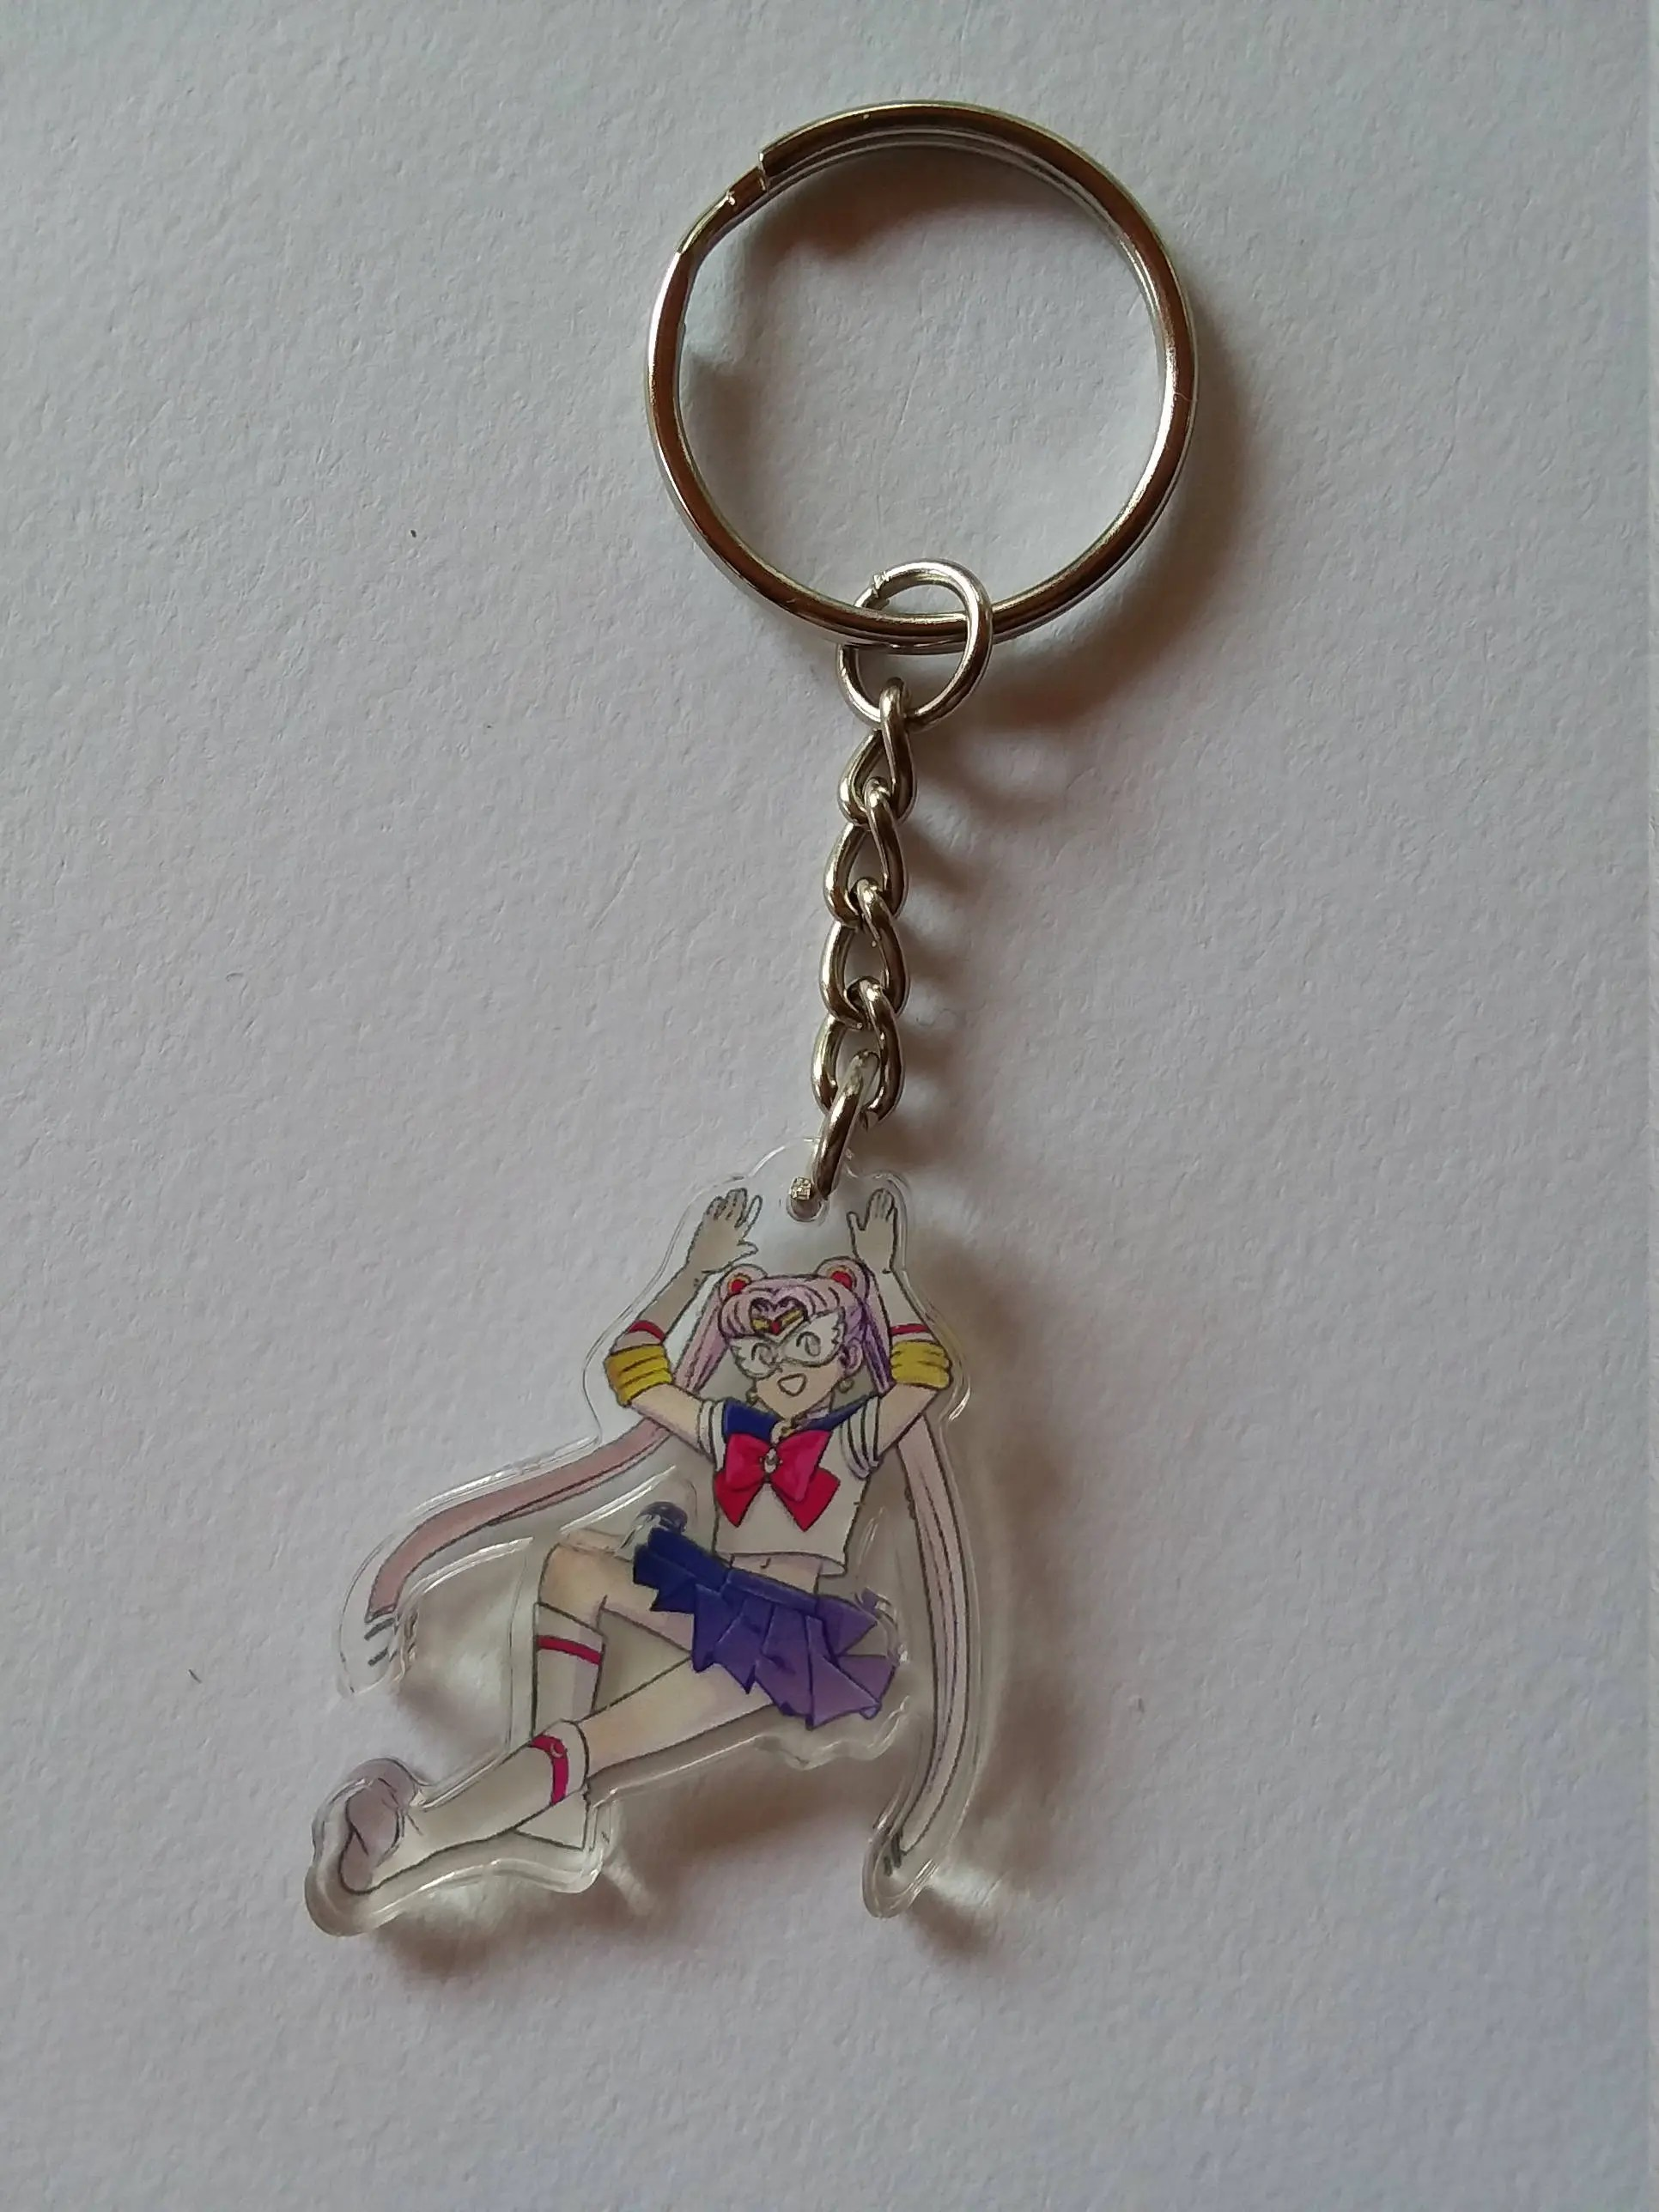 Porte Clef Original Design Sailor Moon Charme Acrylique Porte Clef Design Original De Costume Manga Mignon Magical Girl